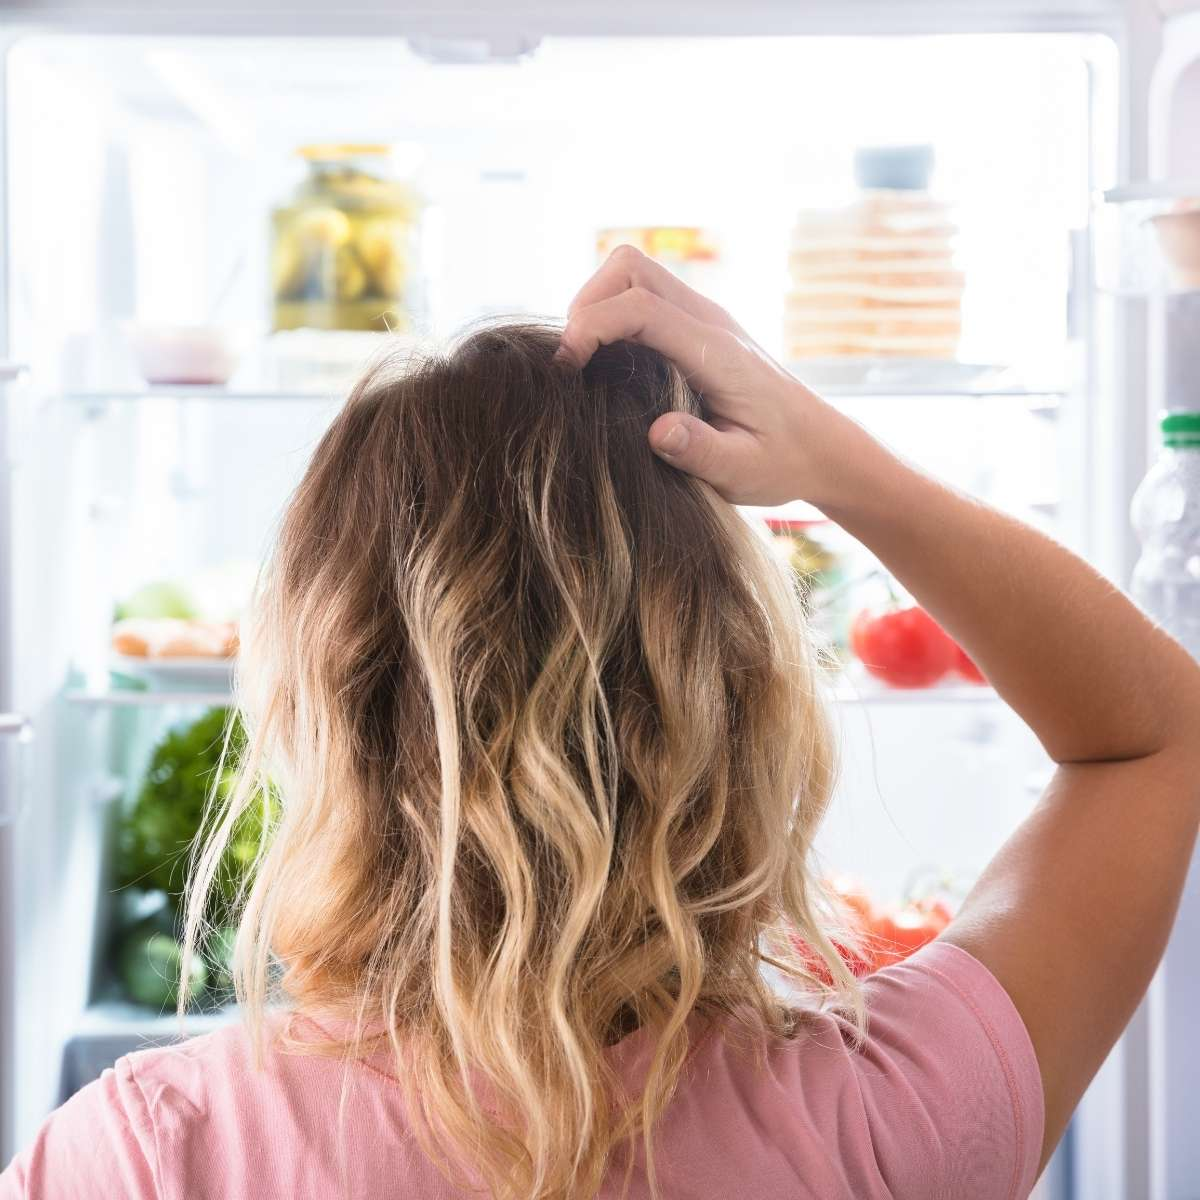 Person scratching that back of head looking into an organized refrigerator with the doors open.